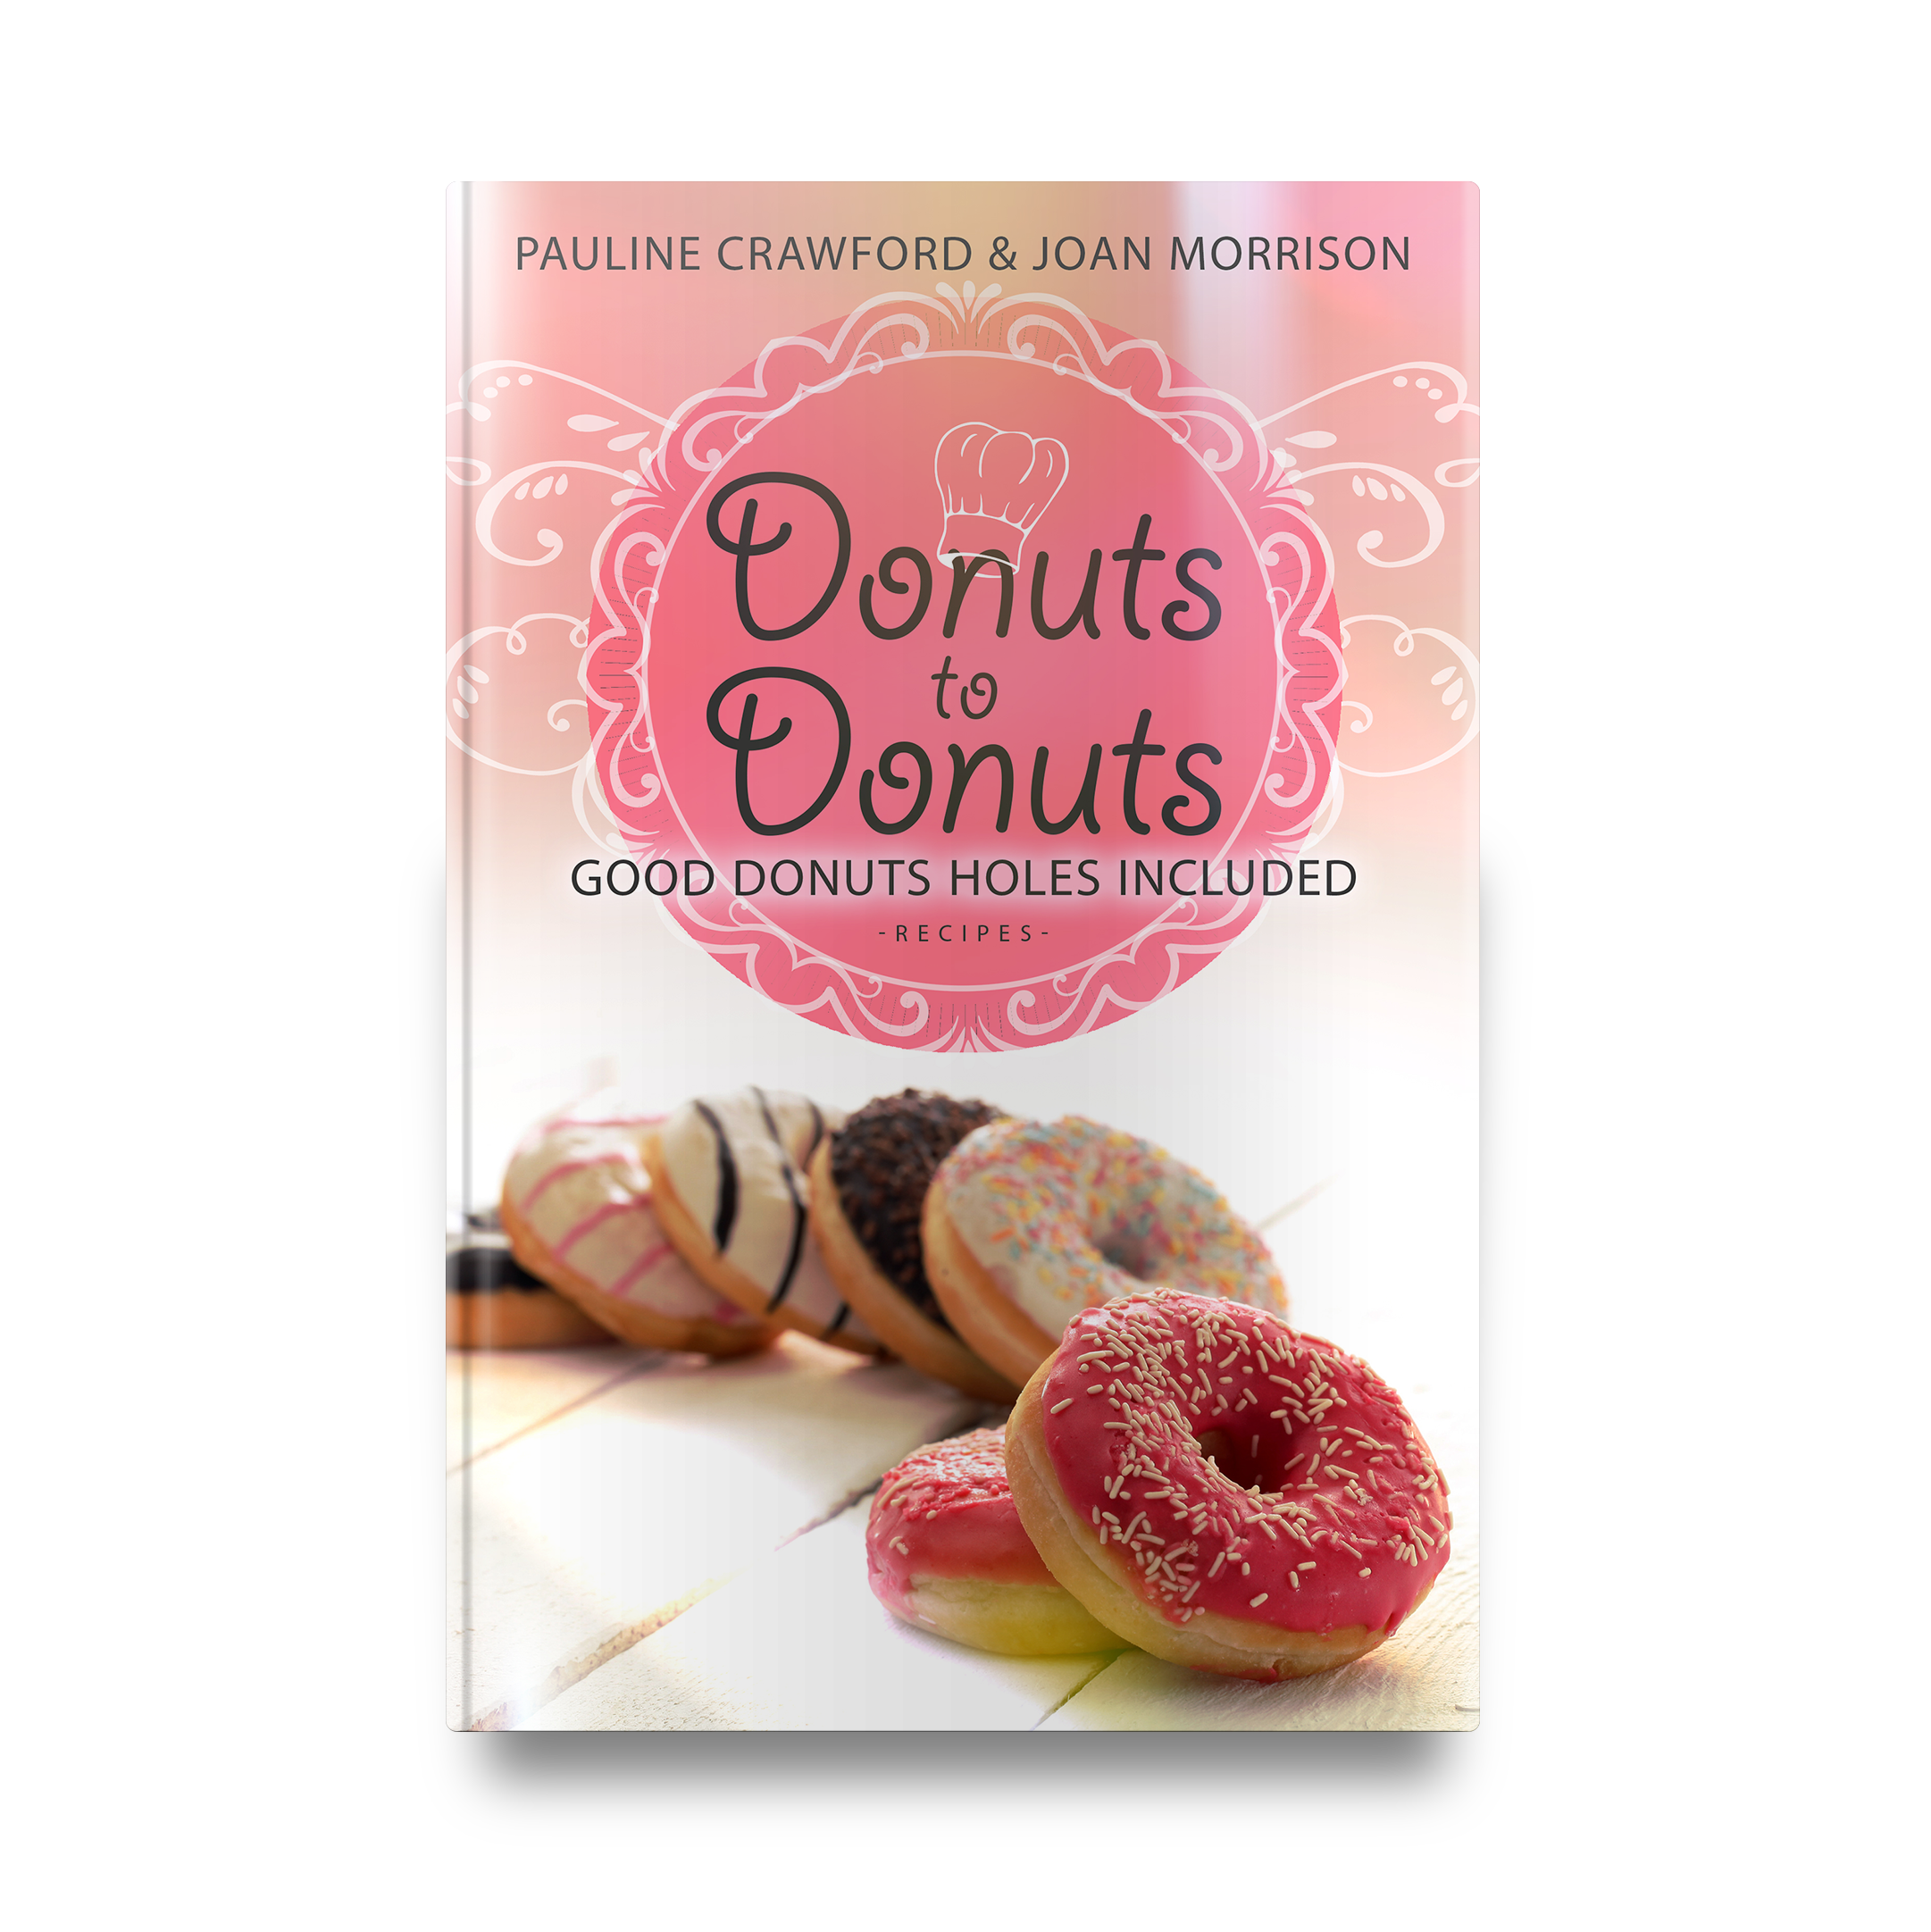 Donuts to Donuts by Pauline Crawford & Joan Morrison || Designed by TheThatchery.com